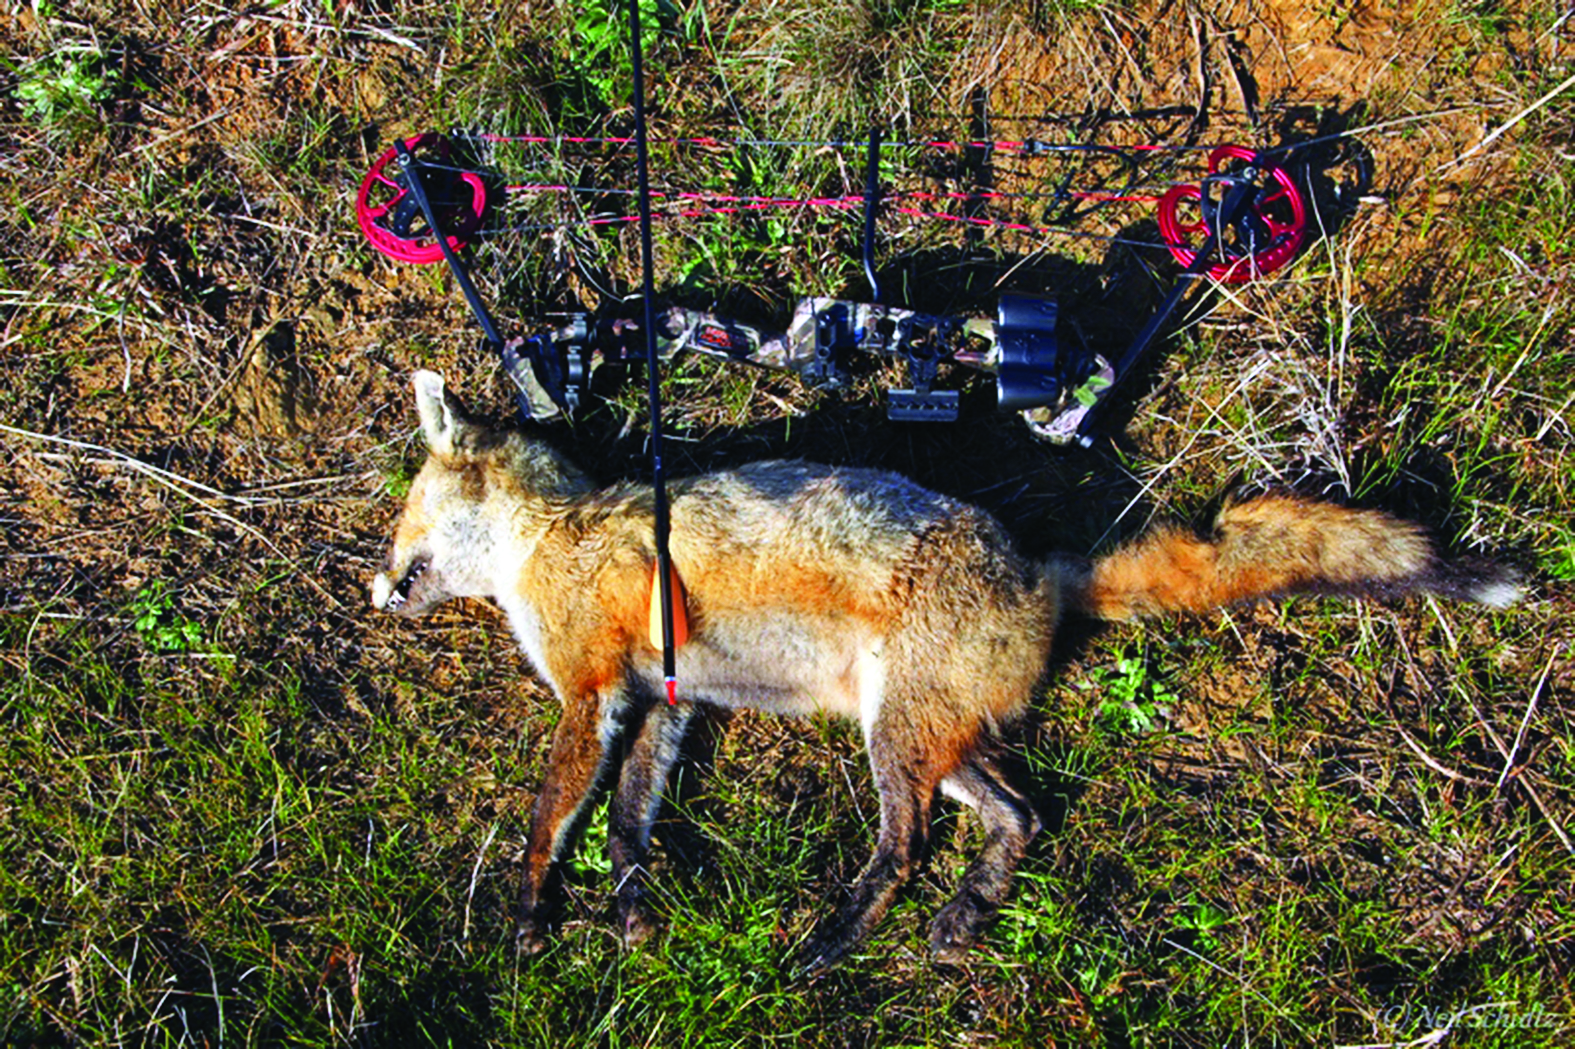 An adult fox taken with a Barnett compound bow. Bows are ideal when hunting on small blocks where overshooting would be a safety issue with a firearm.